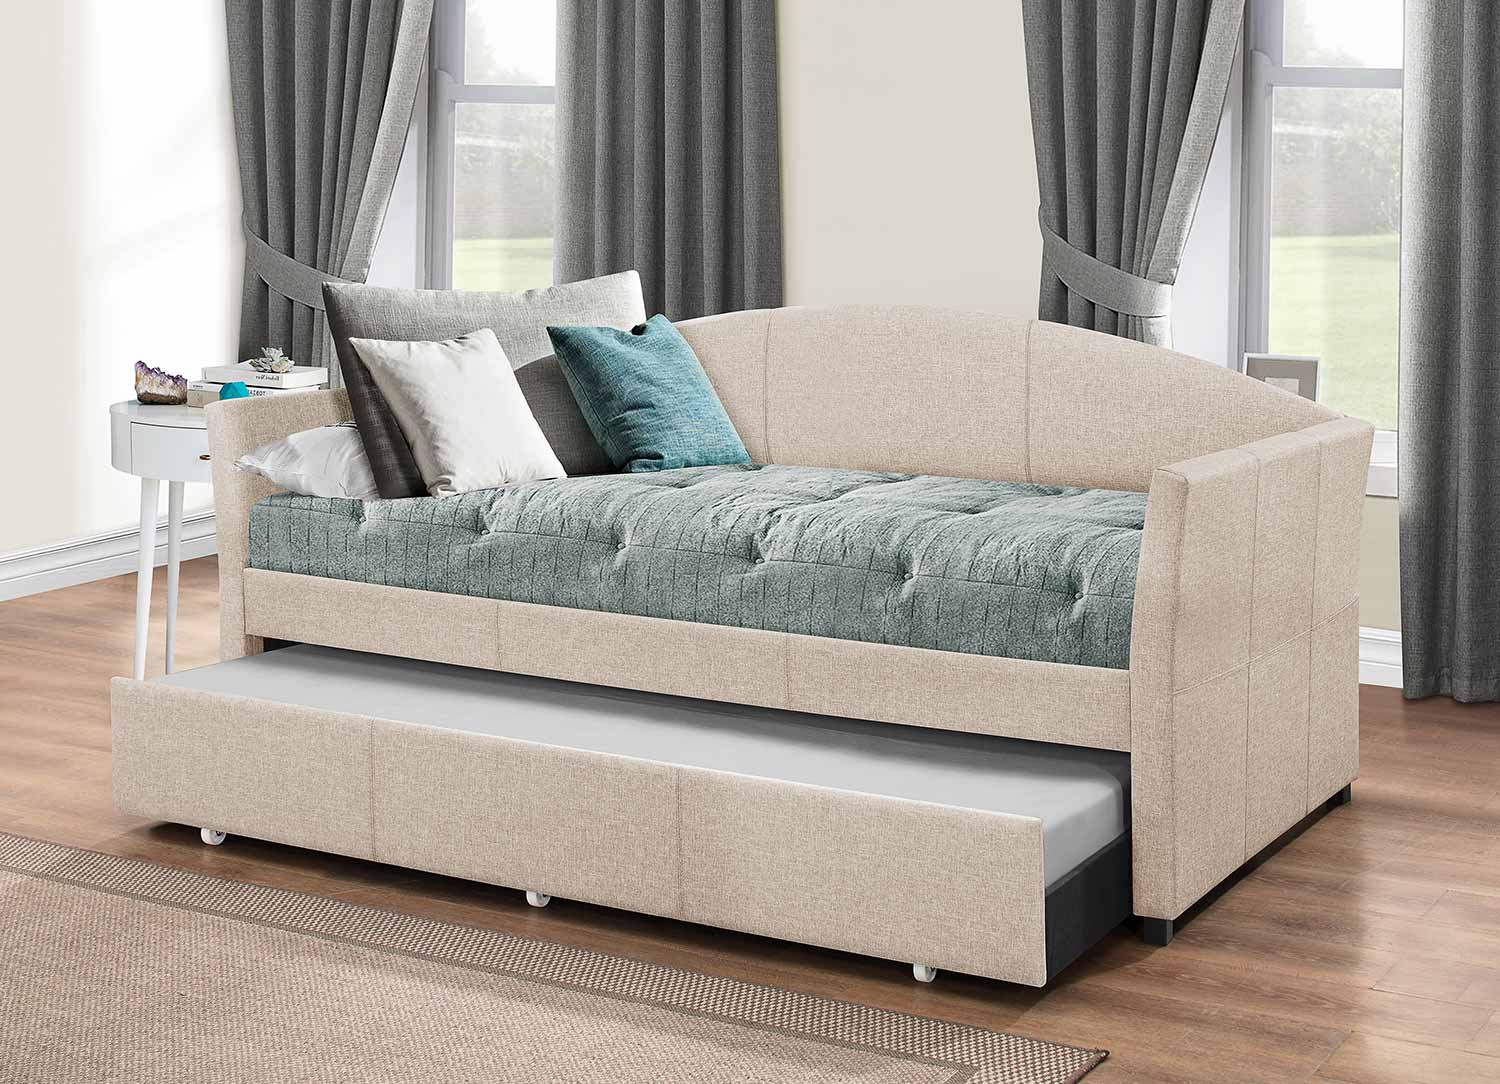 Hillsdale Westchester Daybed with Trundle - Fog Fabric